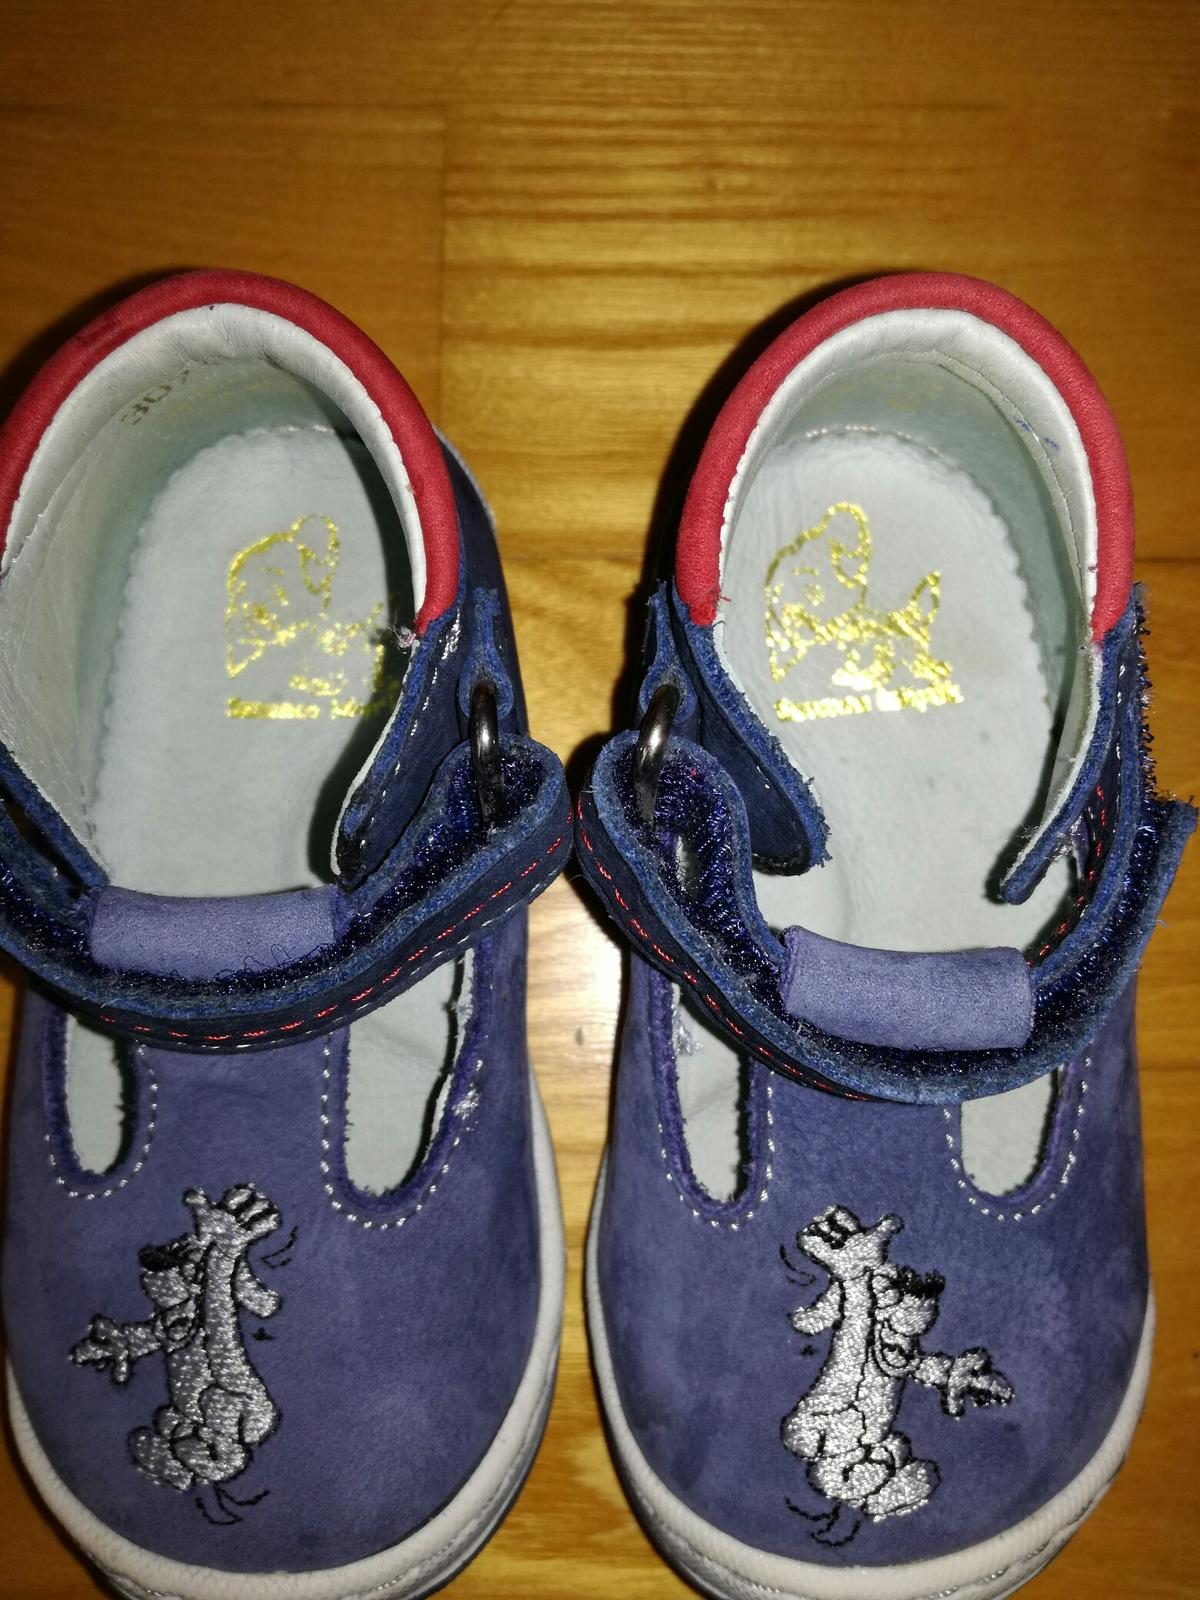 Superfit Haus Schuhe gr. 28 in 9122 for €8.00 for sale Shpock